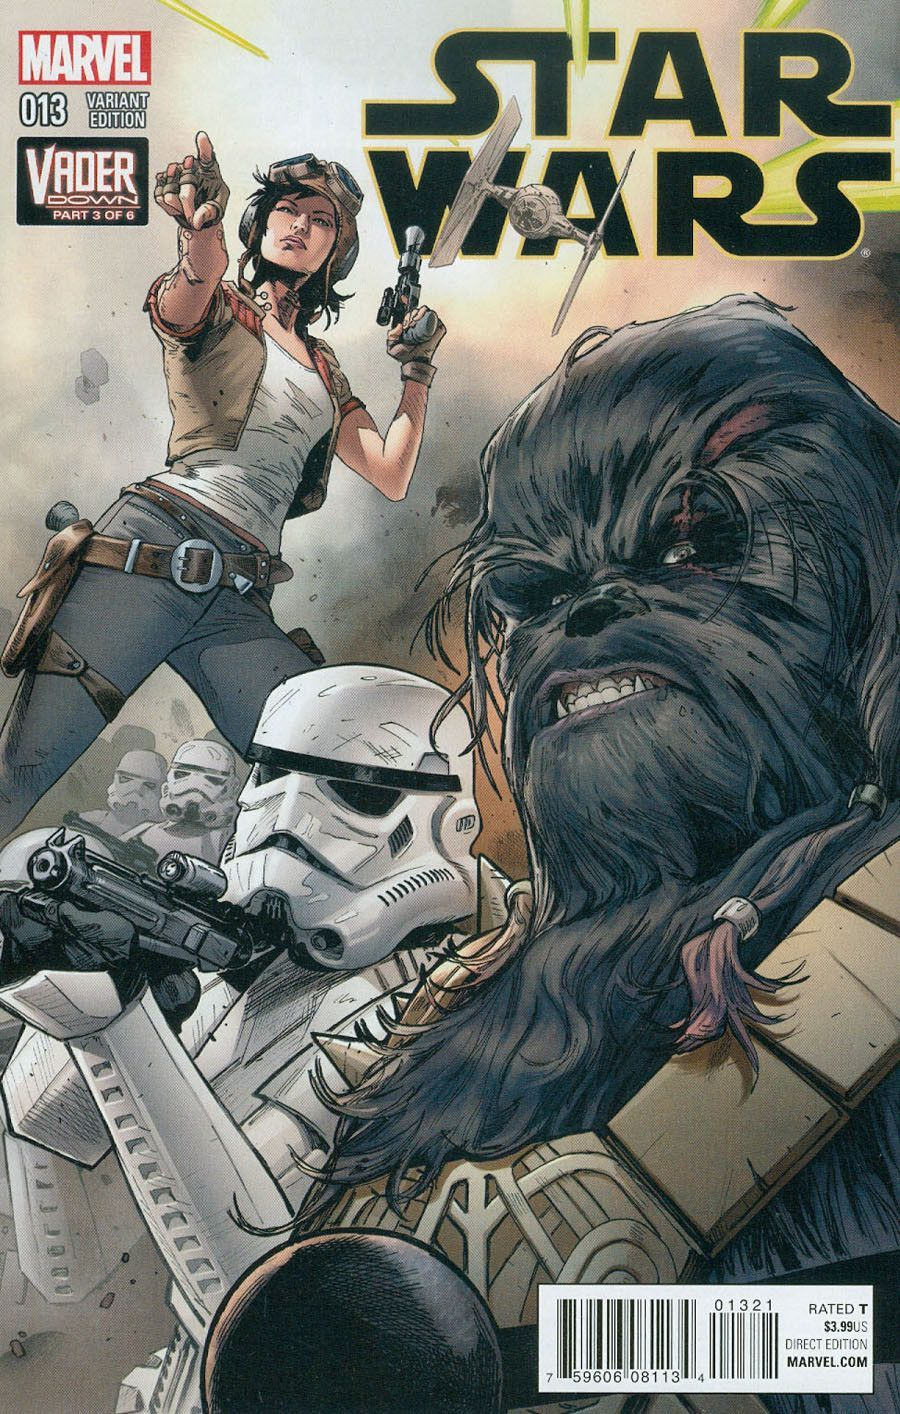 Marvel Star Wars 2015 13 Connecting Cover Variant Star Wars Comics Star Wars Galaxies Star Wars Books